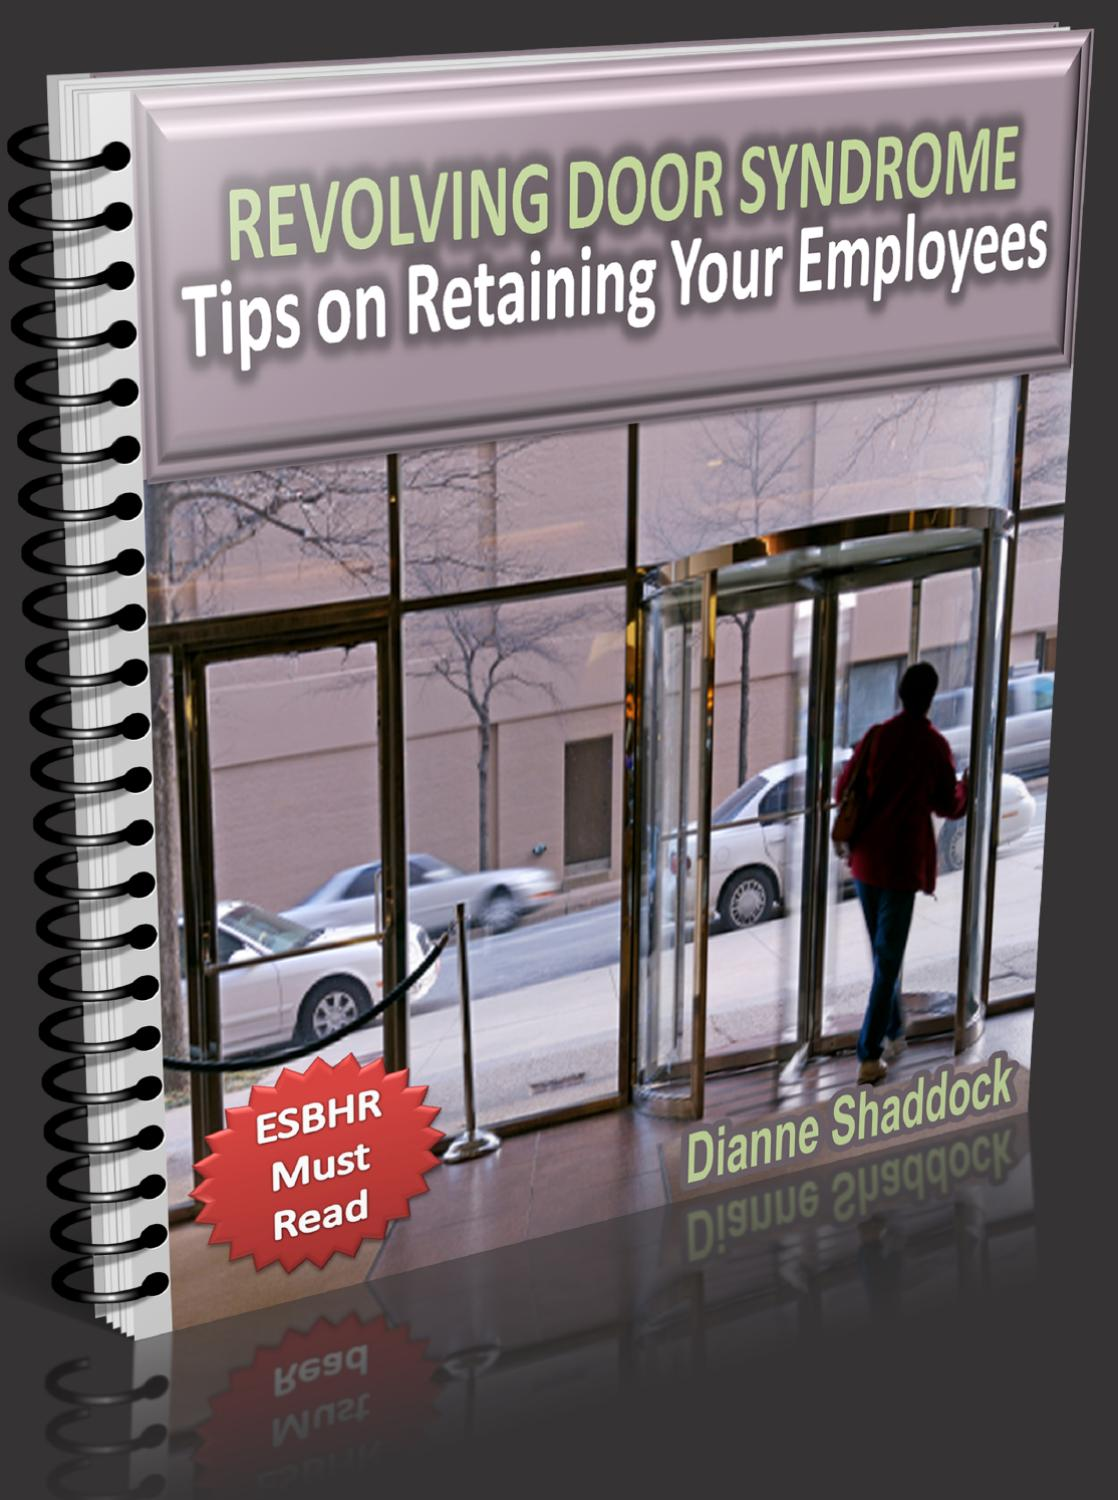 Revolving Door Syndrome - Tips On Retaining Your Employees by Dianne Shaddock - issuu & Revolving Door Syndrome - Tips On Retaining Your Employees by ... pezcame.com